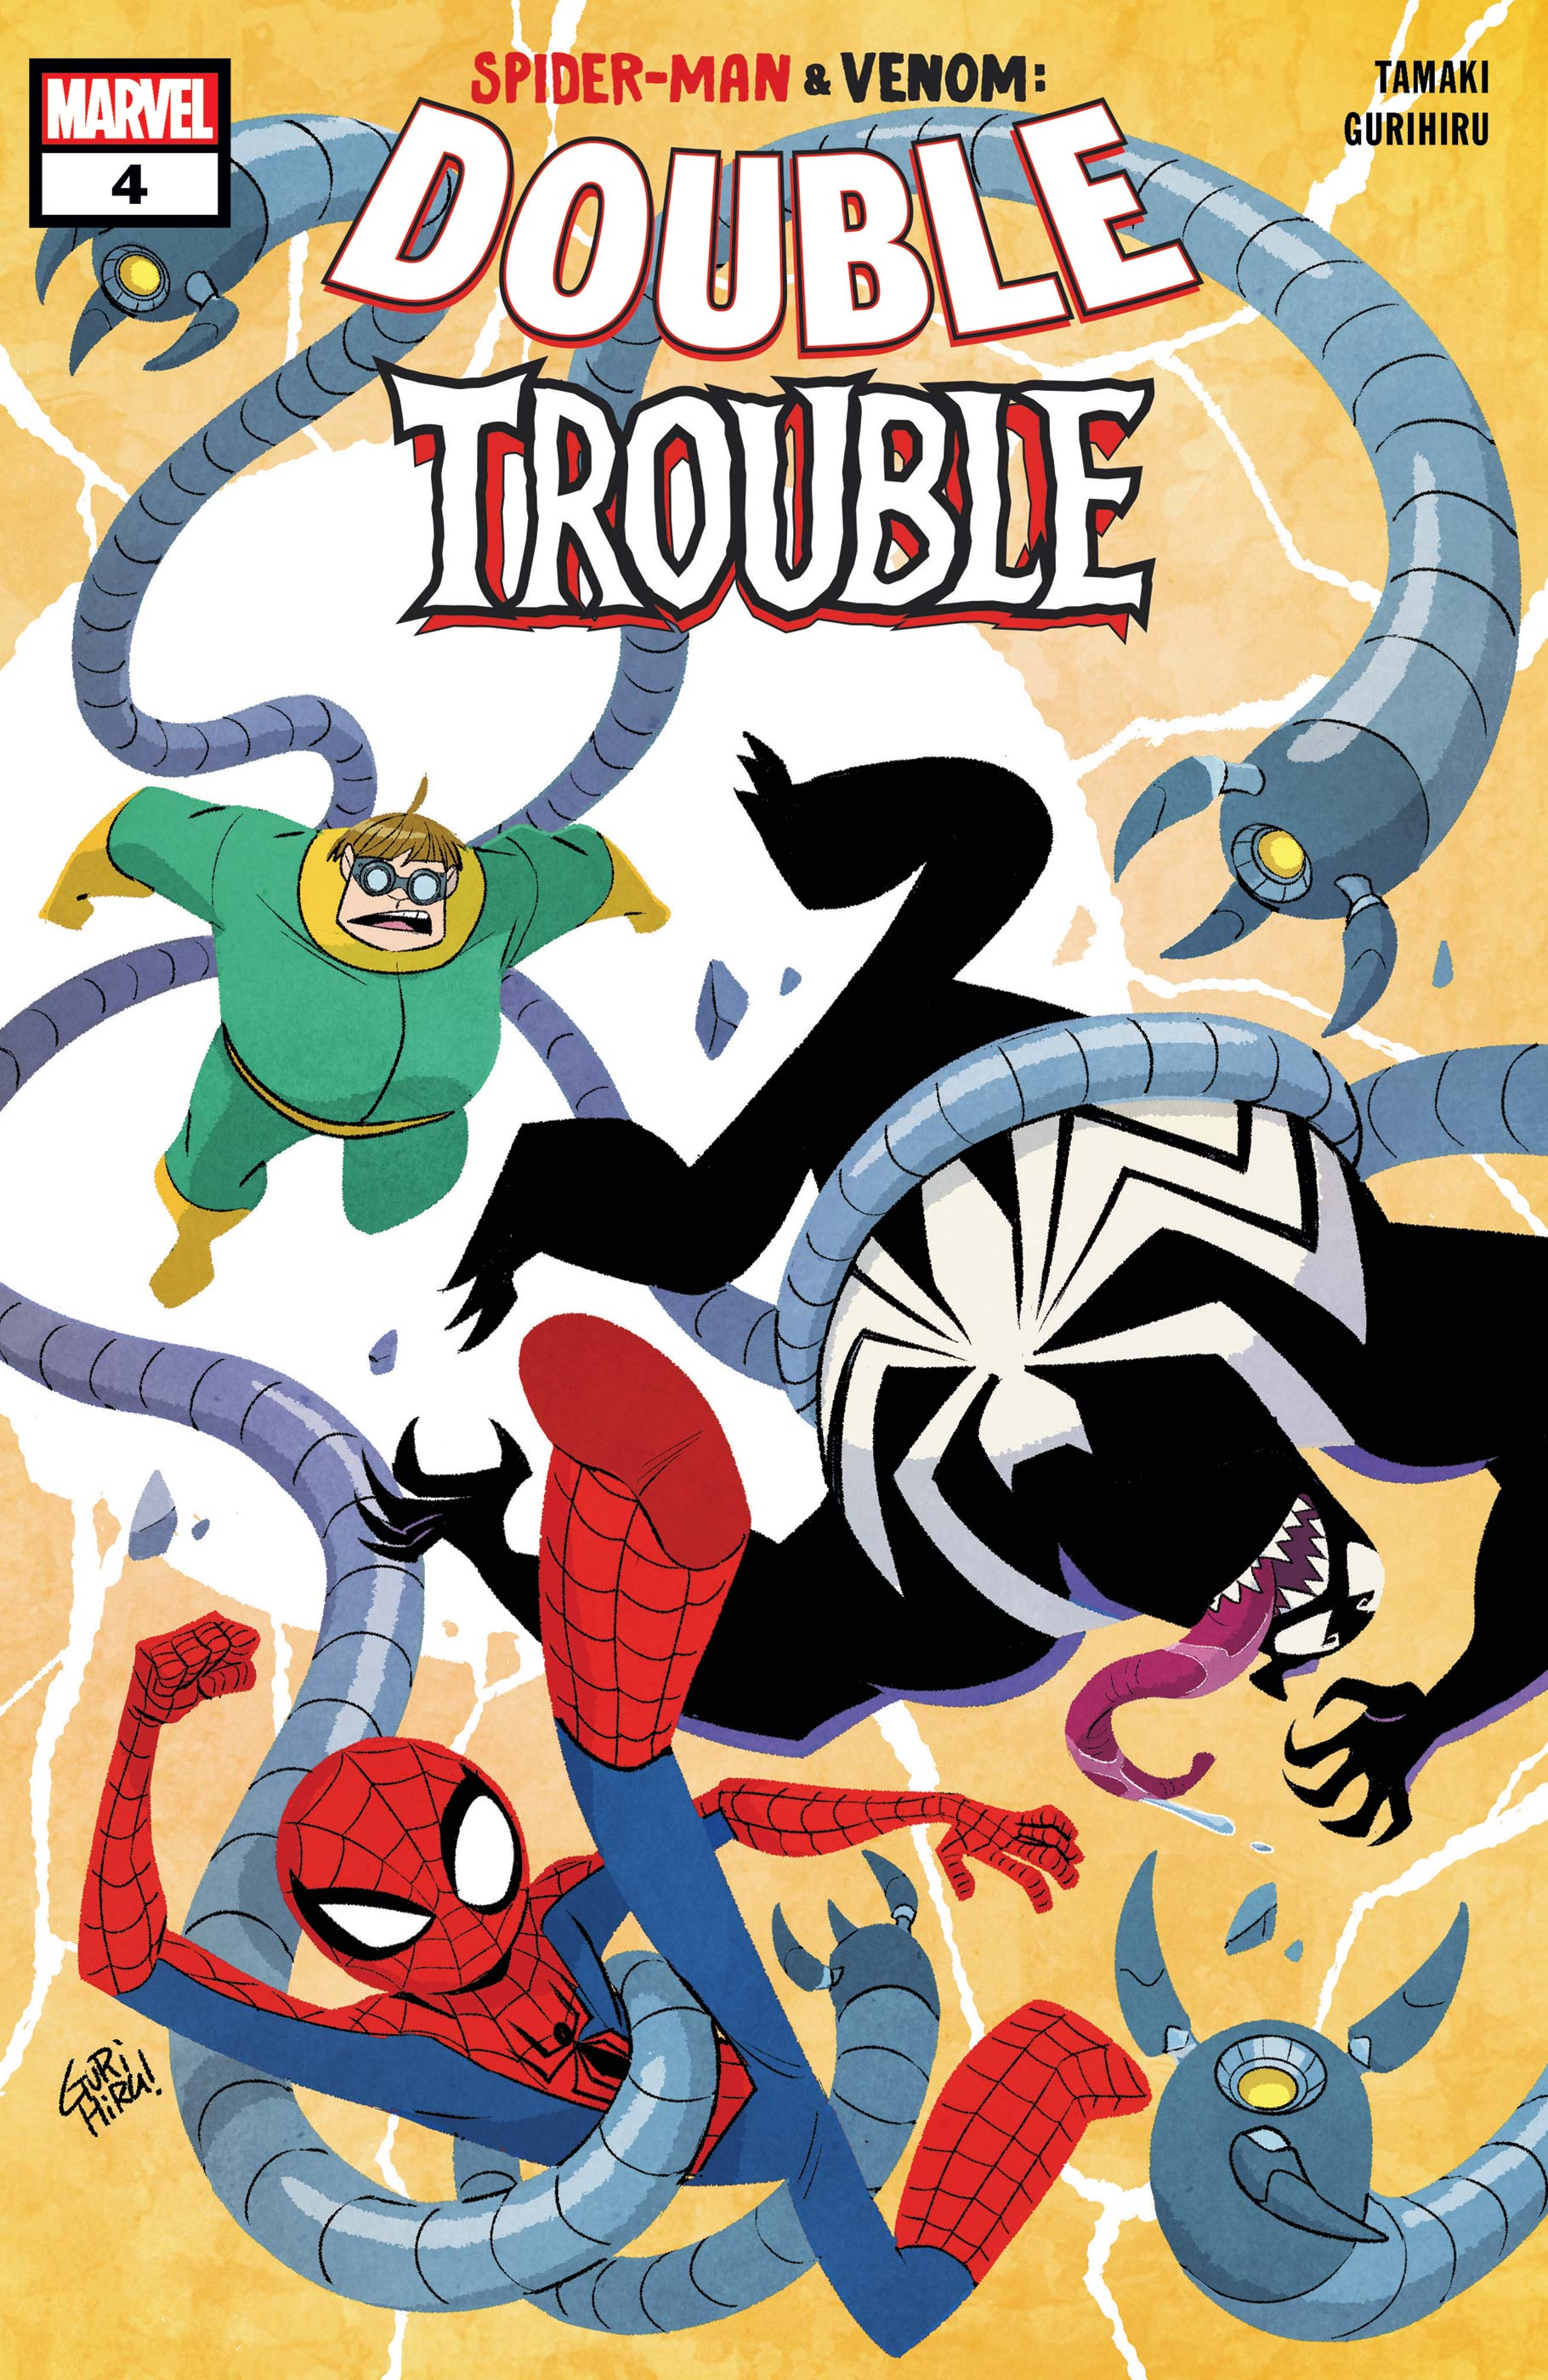 Spider-Man & Venom: Double Trouble (2019) #4